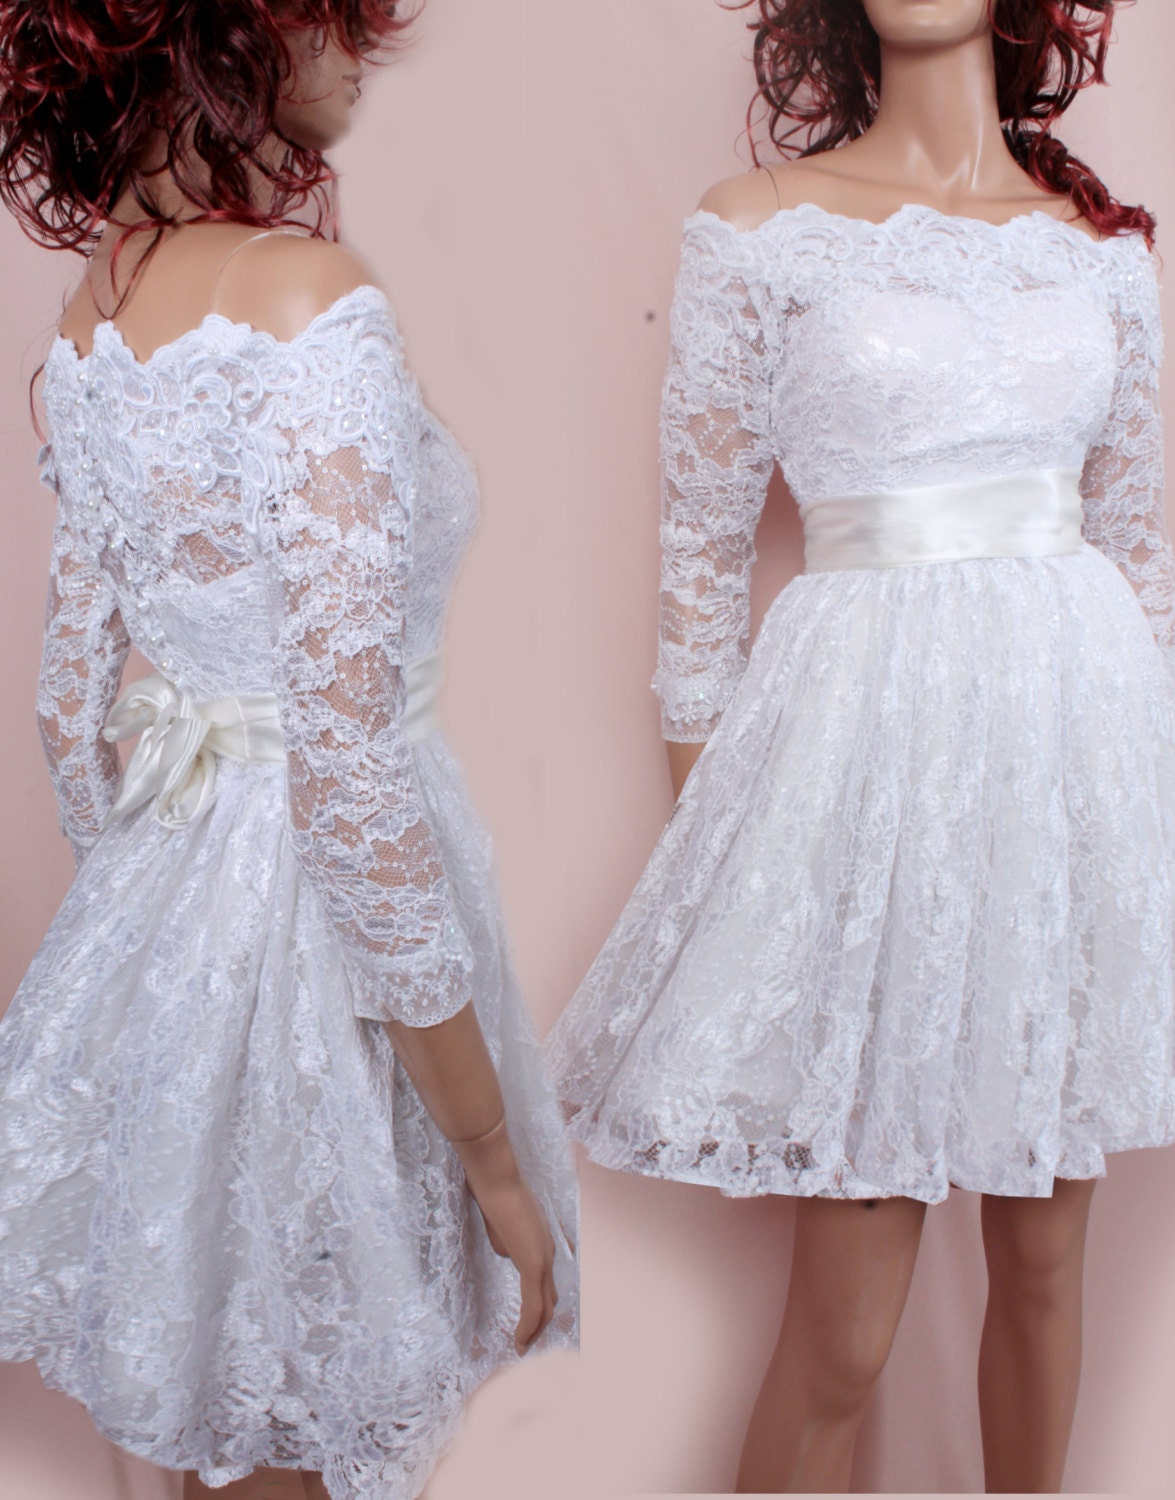 Plus size short wedding lace dresses by uptodatefashion for Have wedding dress made